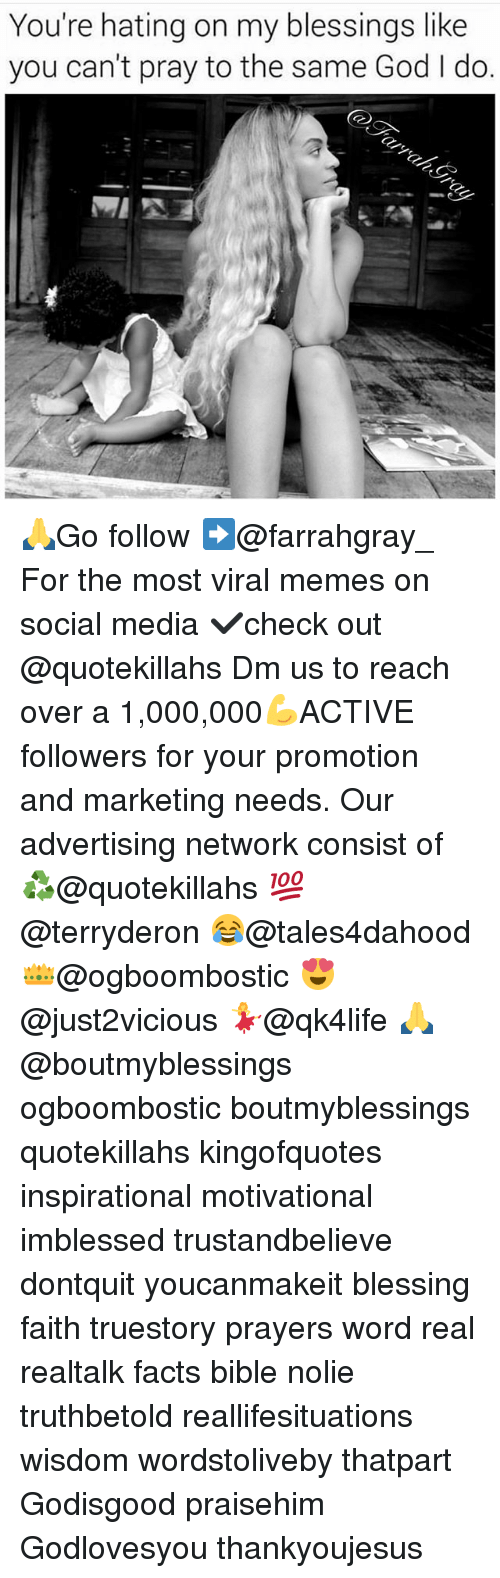 Facts, God, and Memes: You're hating on my blessings like  you can't pray to the same God l do. 🙏Go follow ➡@farrahgray_ For the most viral memes on social media ✔check out @quotekillahs Dm us to reach over a 1,000,000💪ACTIVE followers for your promotion and marketing needs. Our advertising network consist of ♻@quotekillahs 💯@terryderon 😂@tales4dahood 👑@ogboombostic 😍@just2vicious 💃@qk4life 🙏@boutmyblessings ogboombostic boutmyblessings quotekillahs kingofquotes inspirational motivational imblessed trustandbelieve dontquit youcanmakeit blessing faith truestory prayers word real realtalk facts bible nolie truthbetold reallifesituations wisdom wordstoliveby thatpart Godisgood praisehim Godlovesyou thankyoujesus